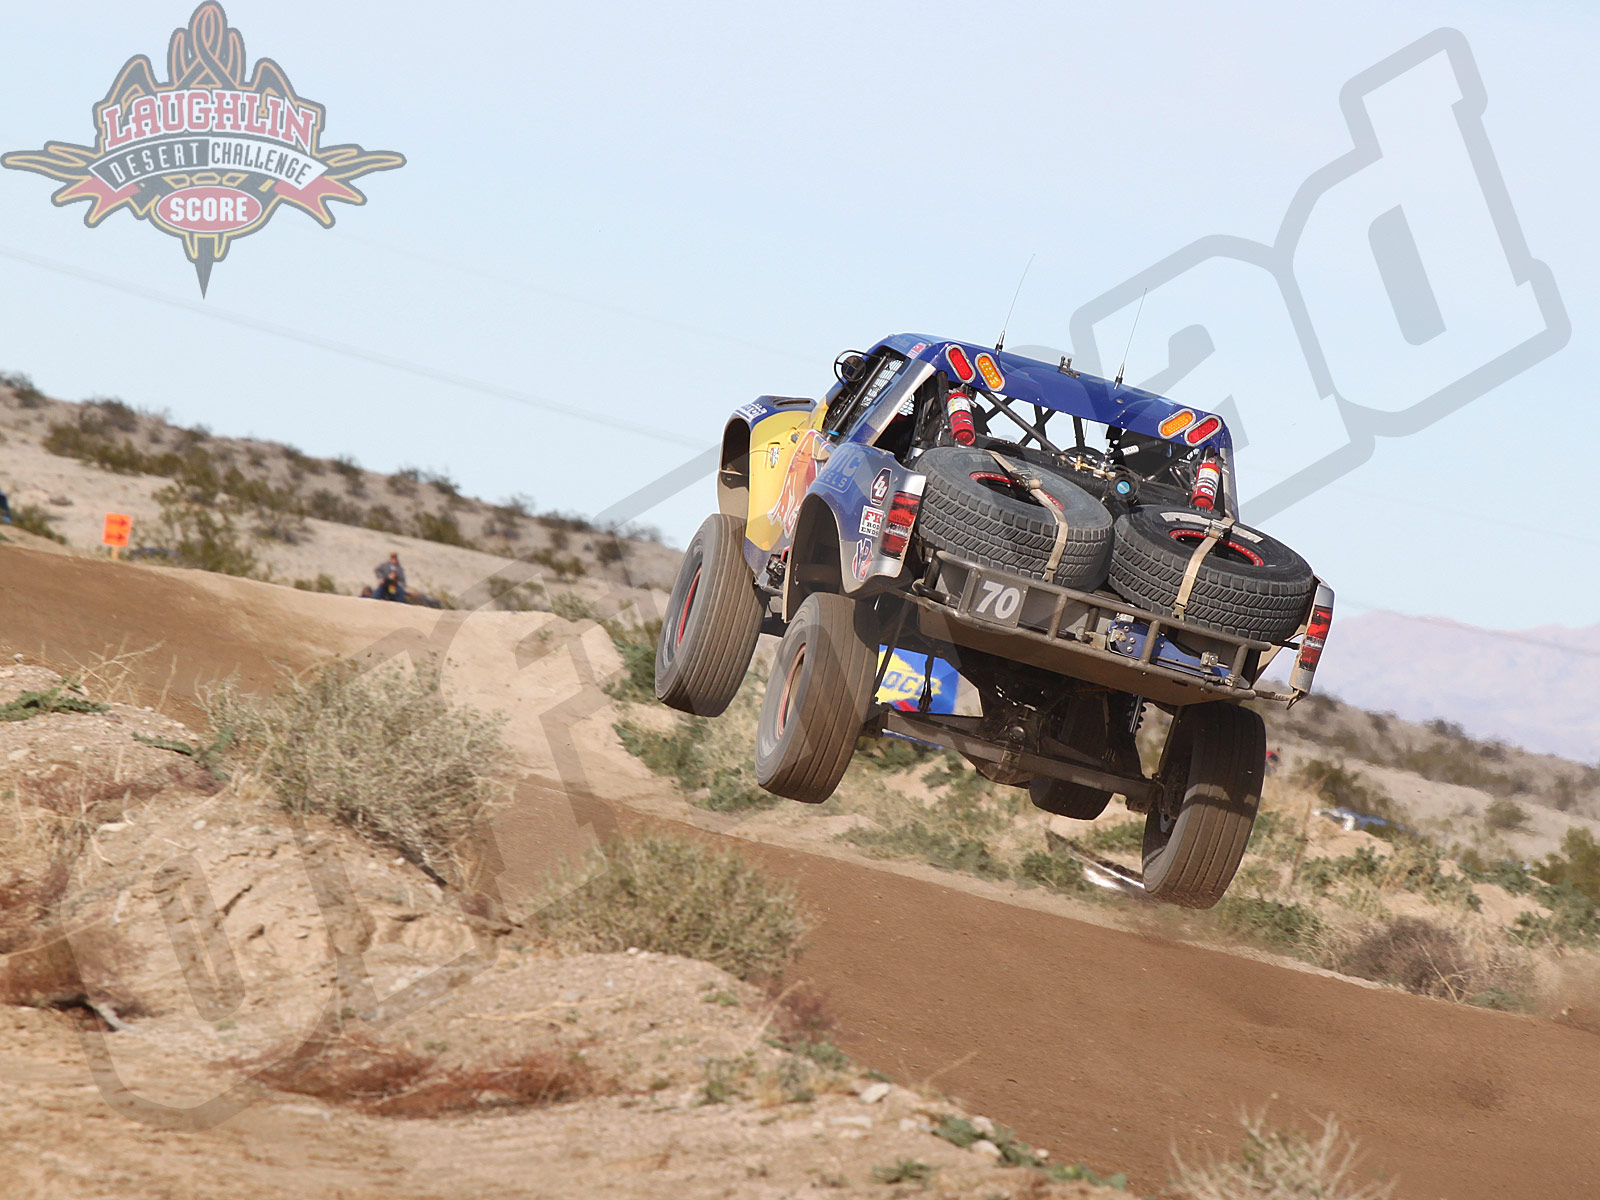 030311or 6787+2011 score laughlin desert challenge+trophy trucks sunday